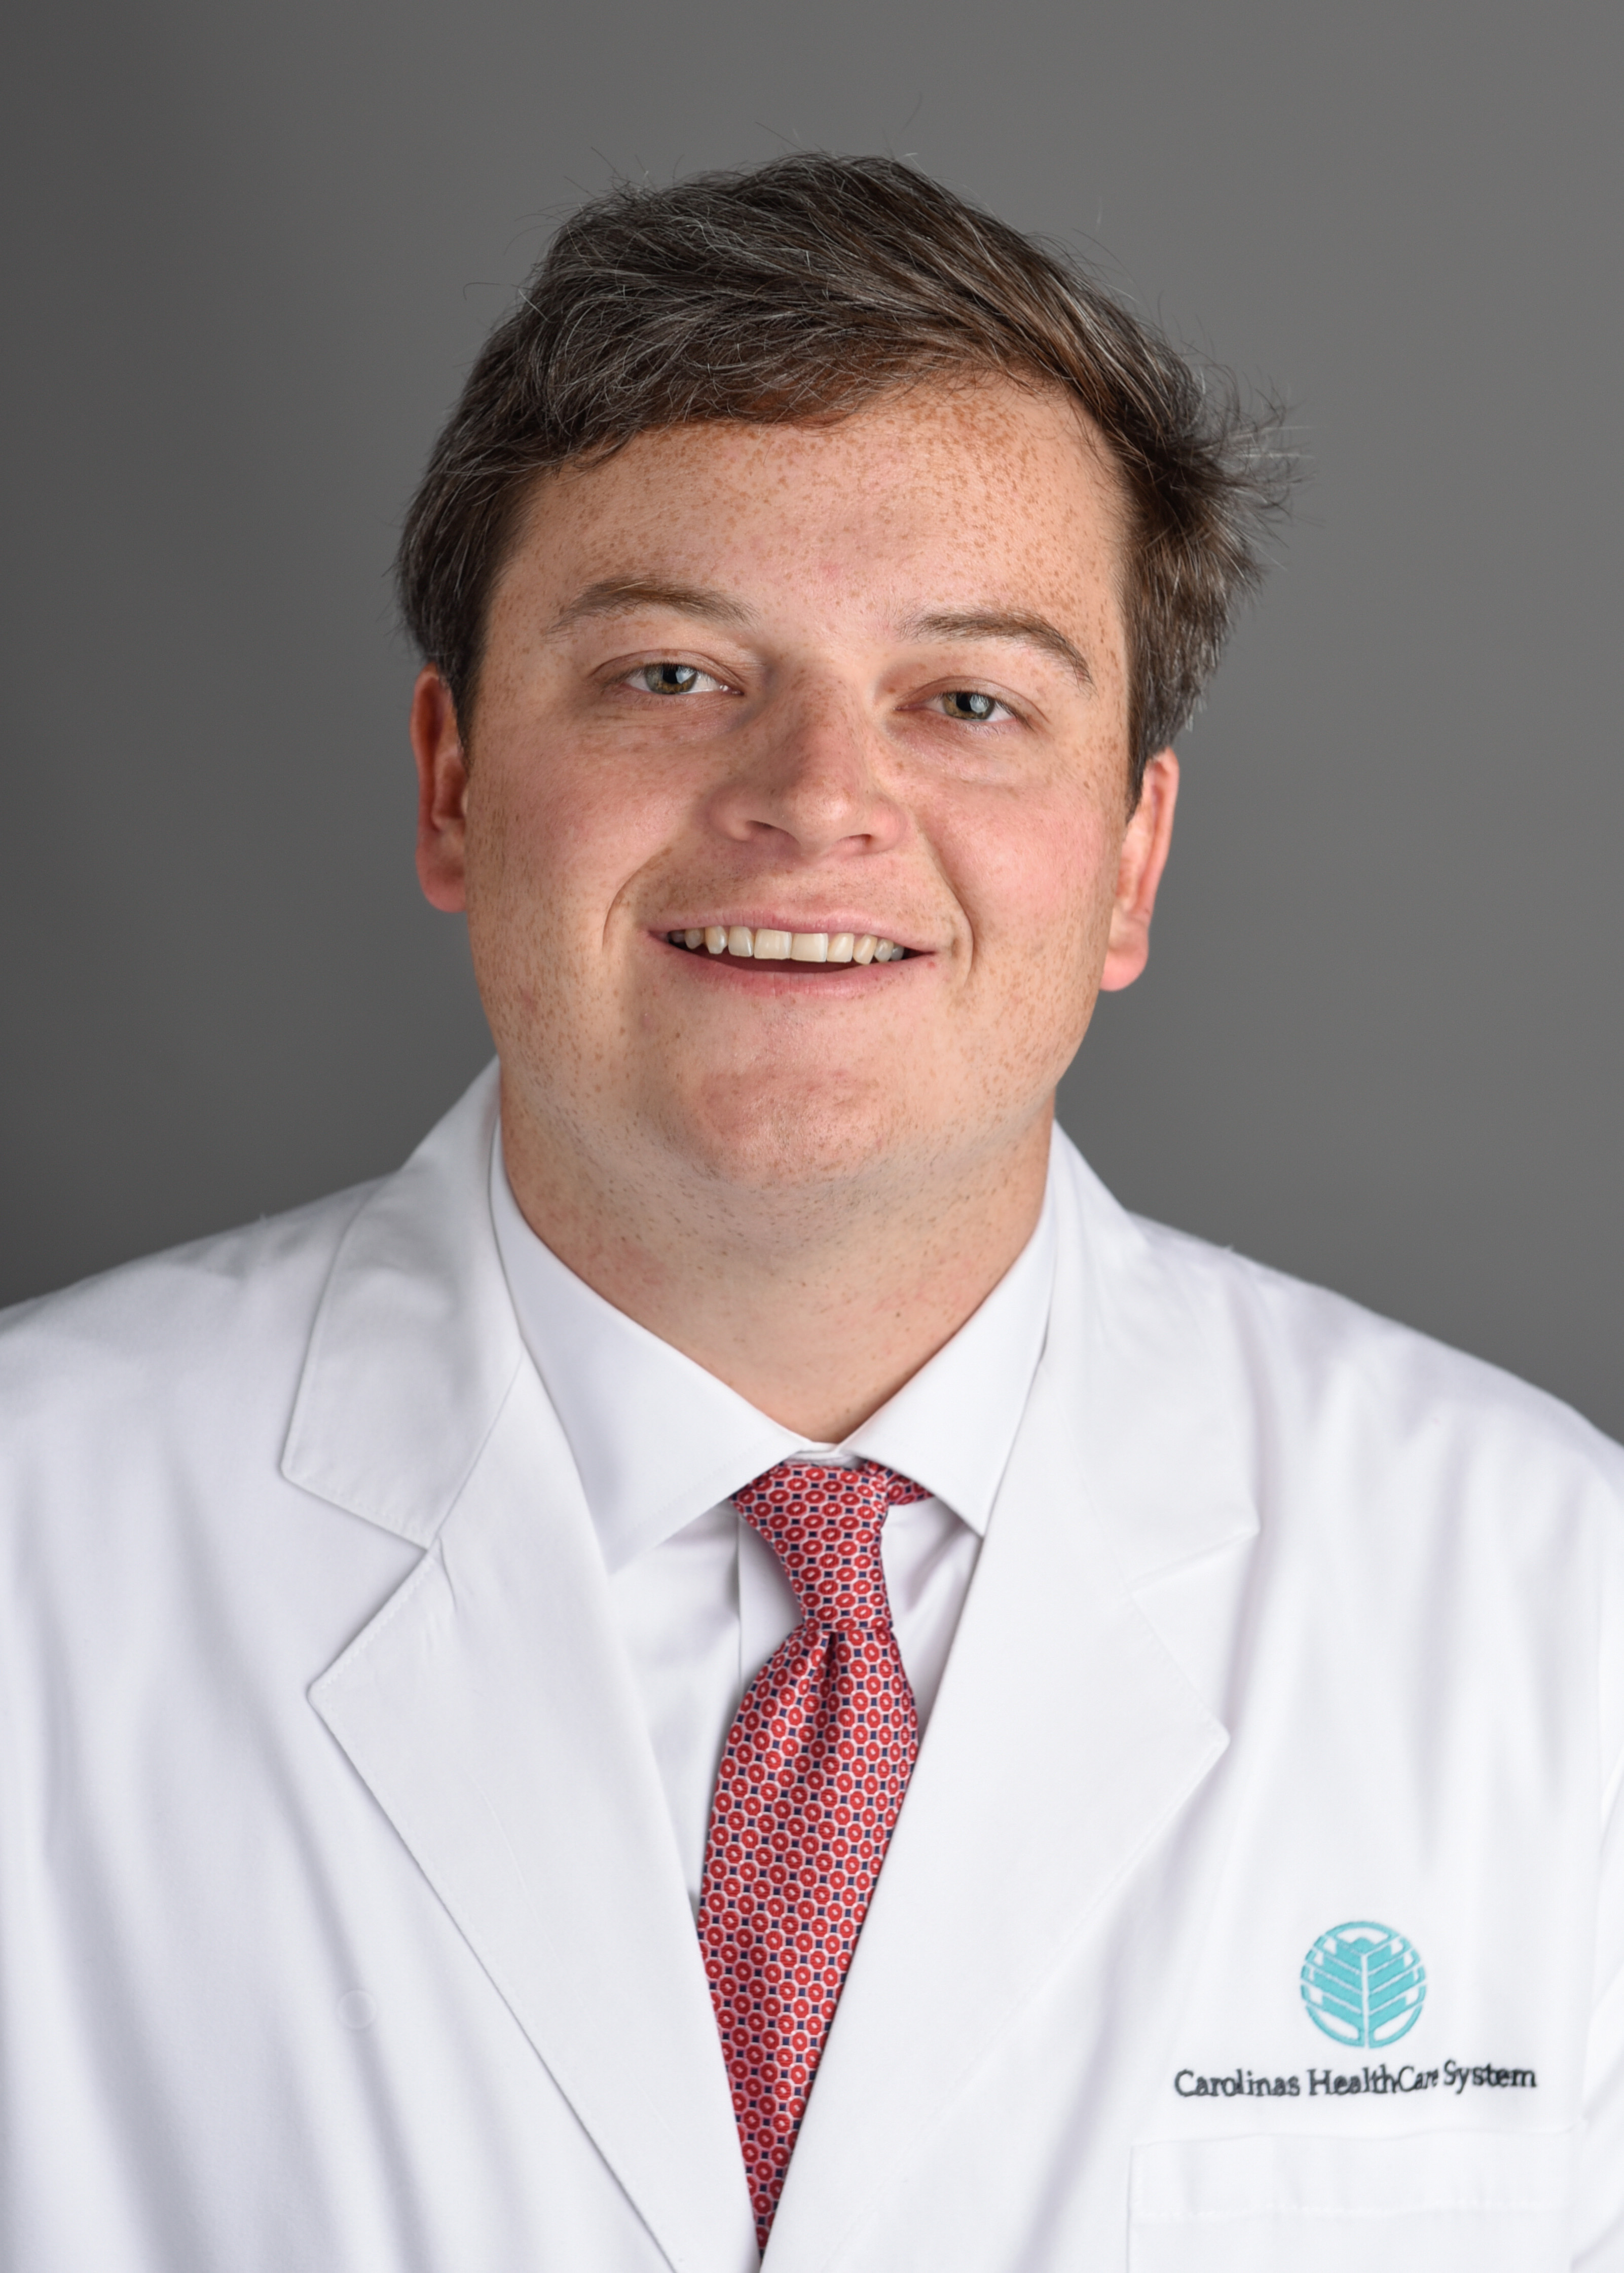 Holden Crosby, MD